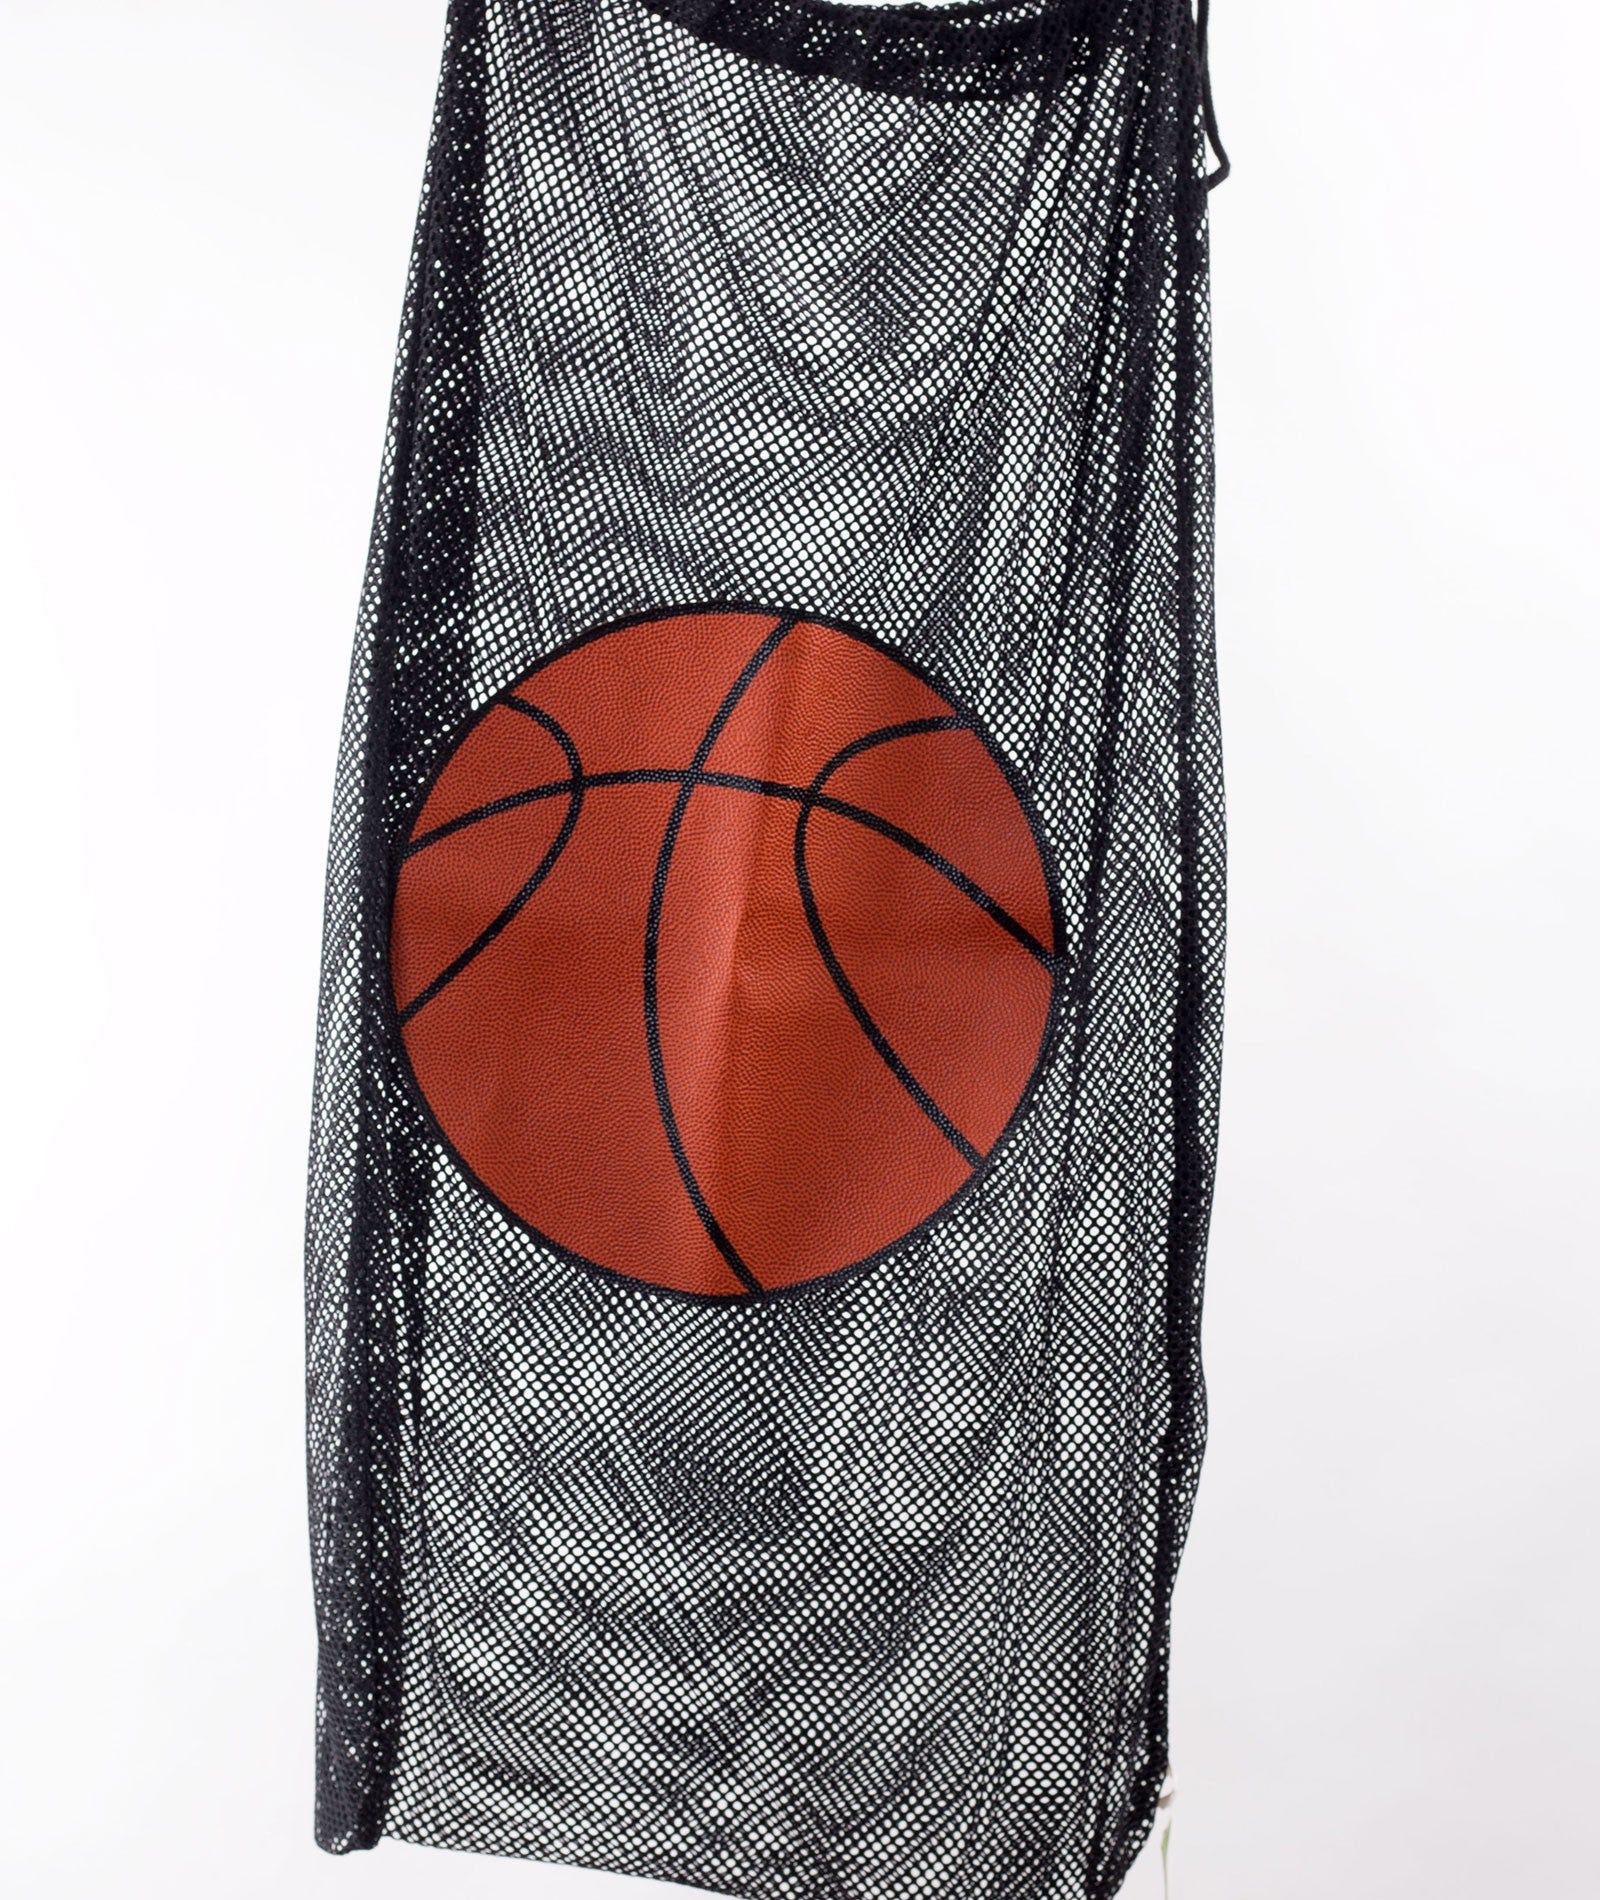 Confetti and Friends Basketball Laundry Bag